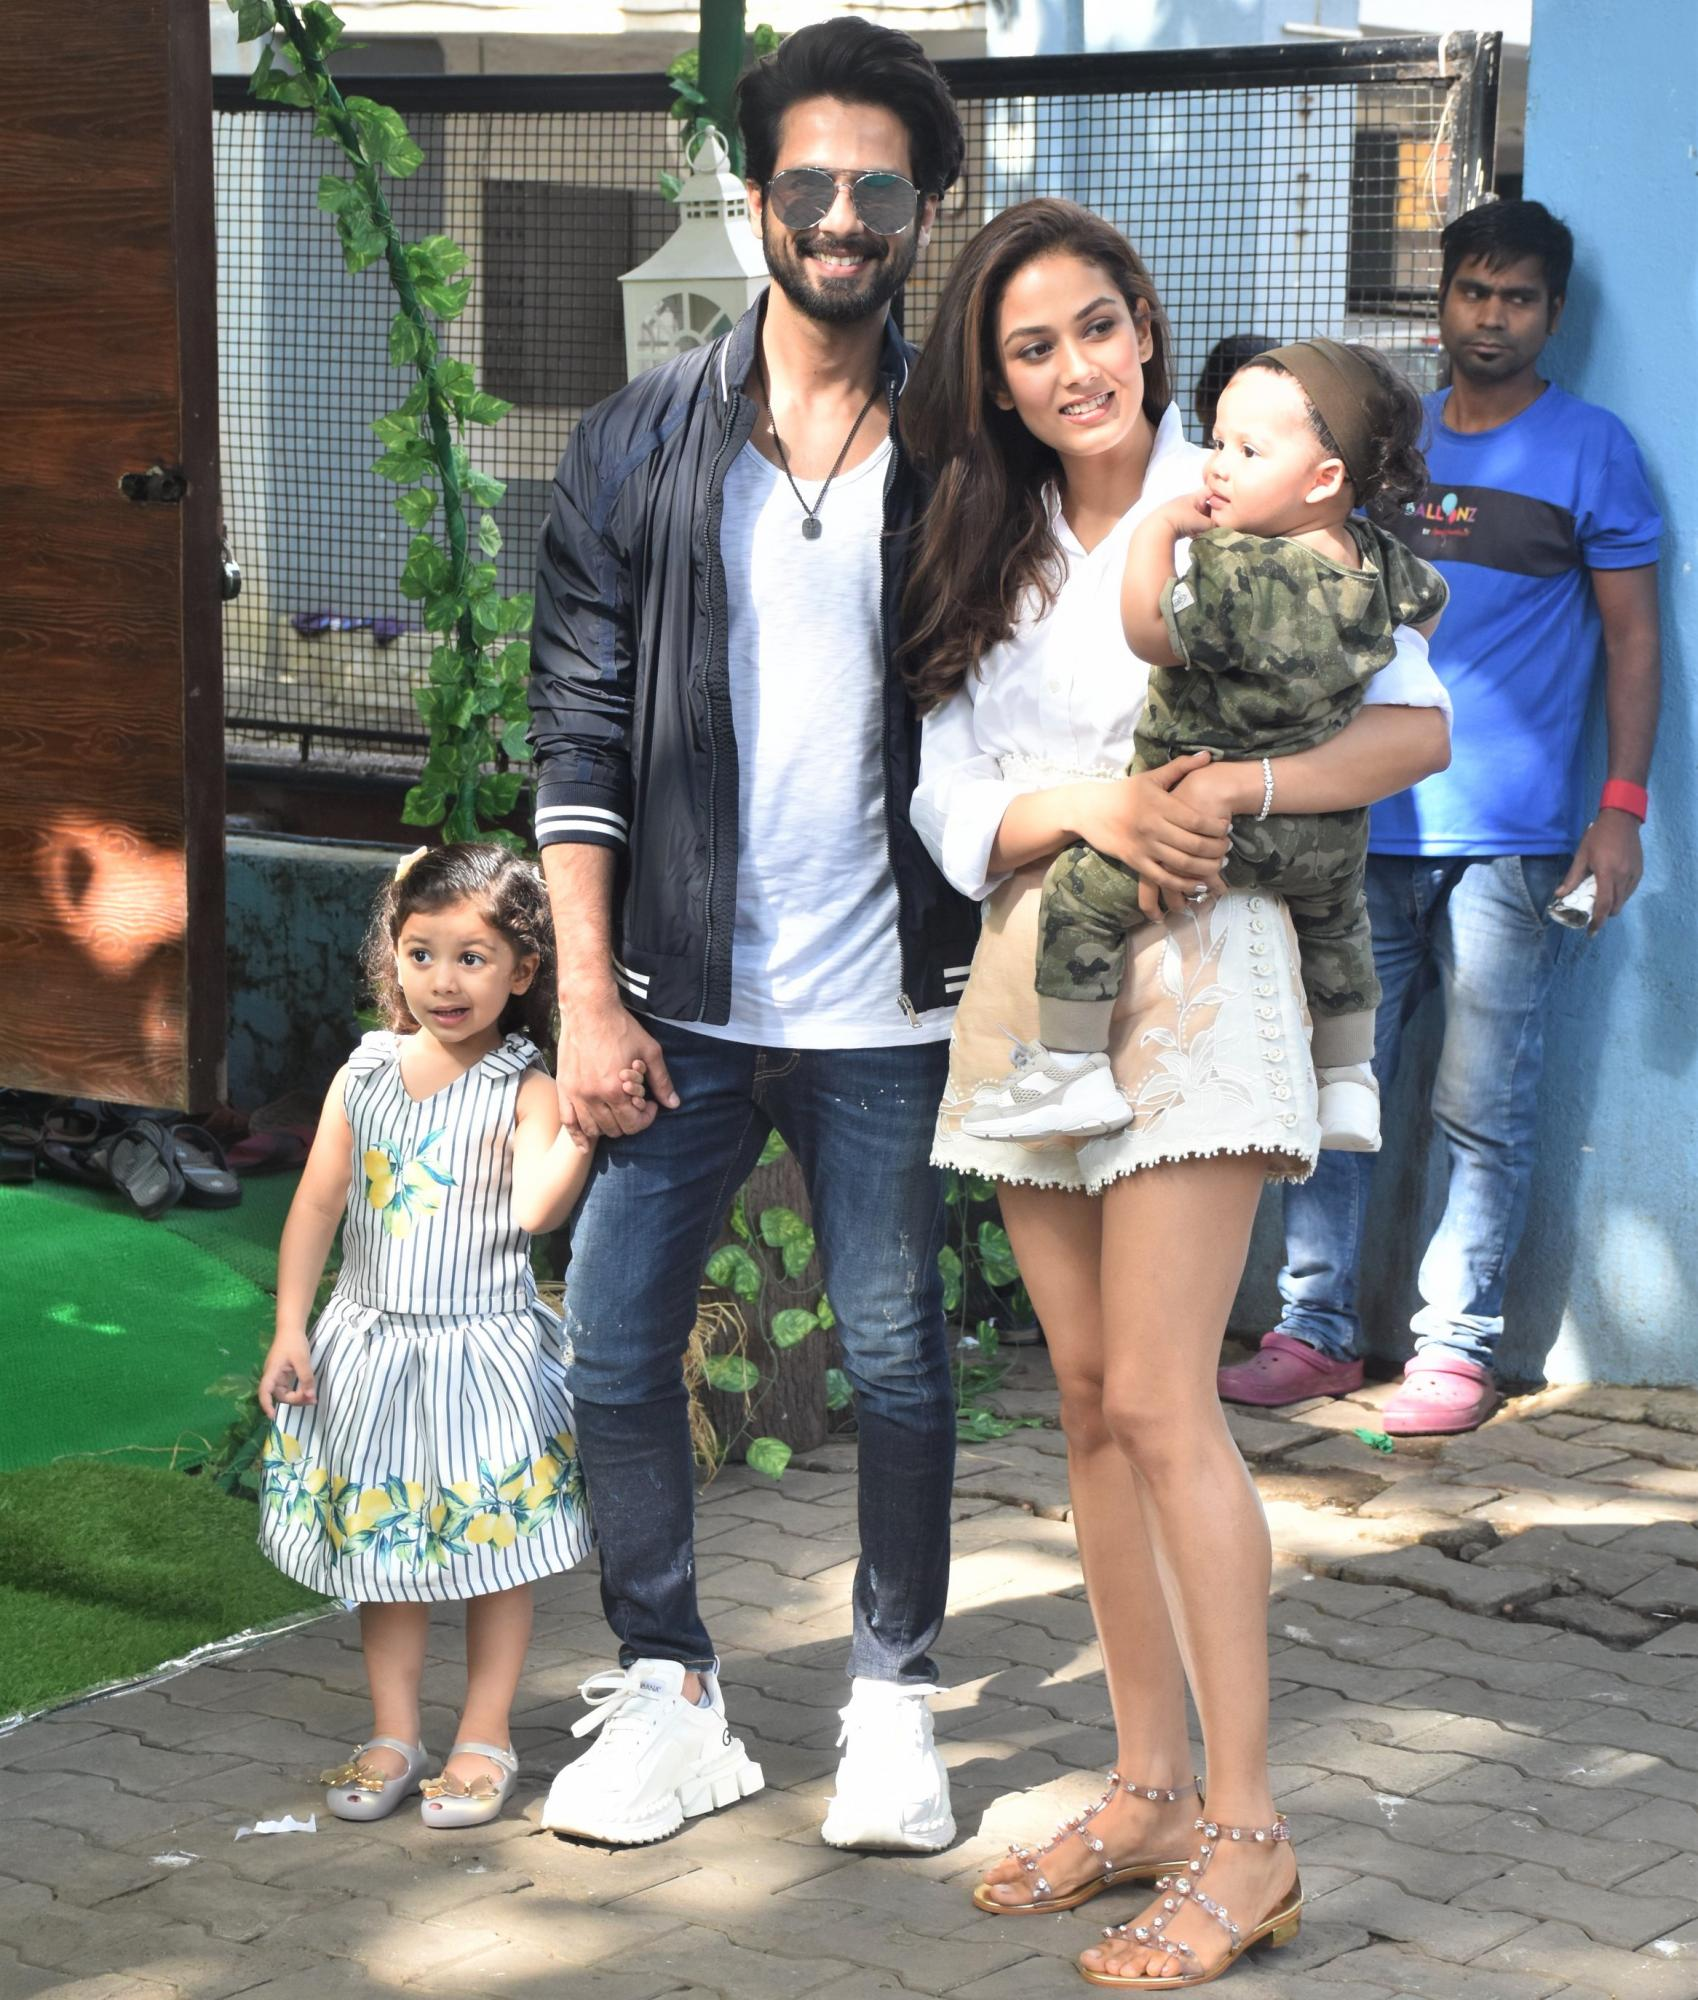 Shahid Kapoor and Mira Rajput Took the Most Romantic Photo Ever During Misha's B-Day!